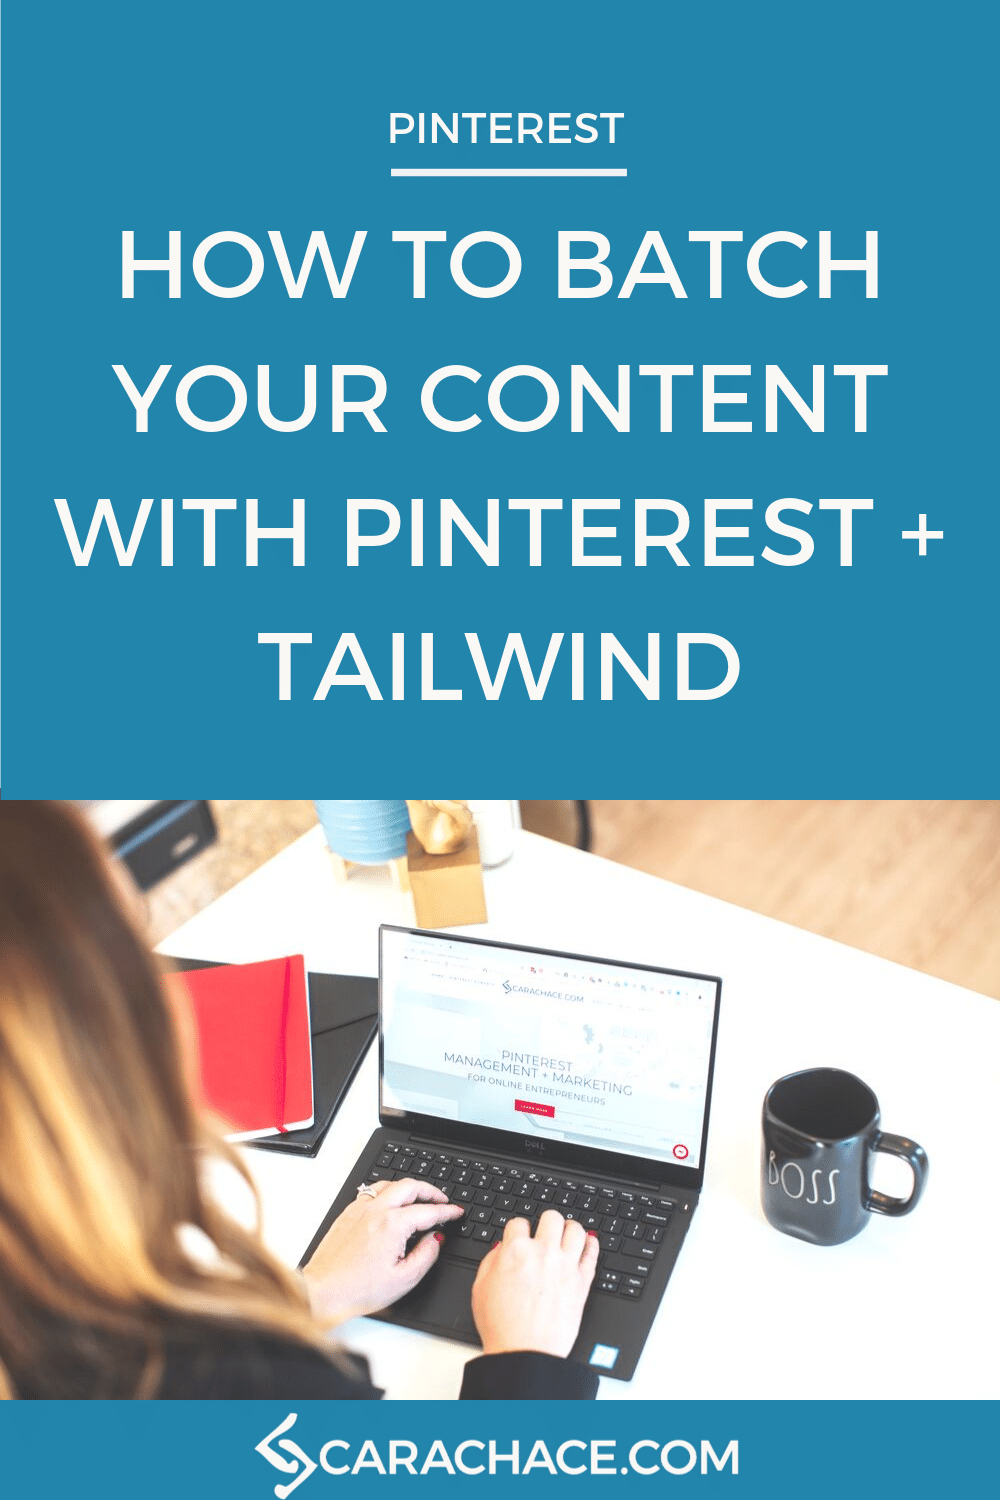 Learn how to save time and create tons of pins by using Pinterest to re-purpose and Tailwind to batch your business content. #carachace #tailwind #pinterestmarketing